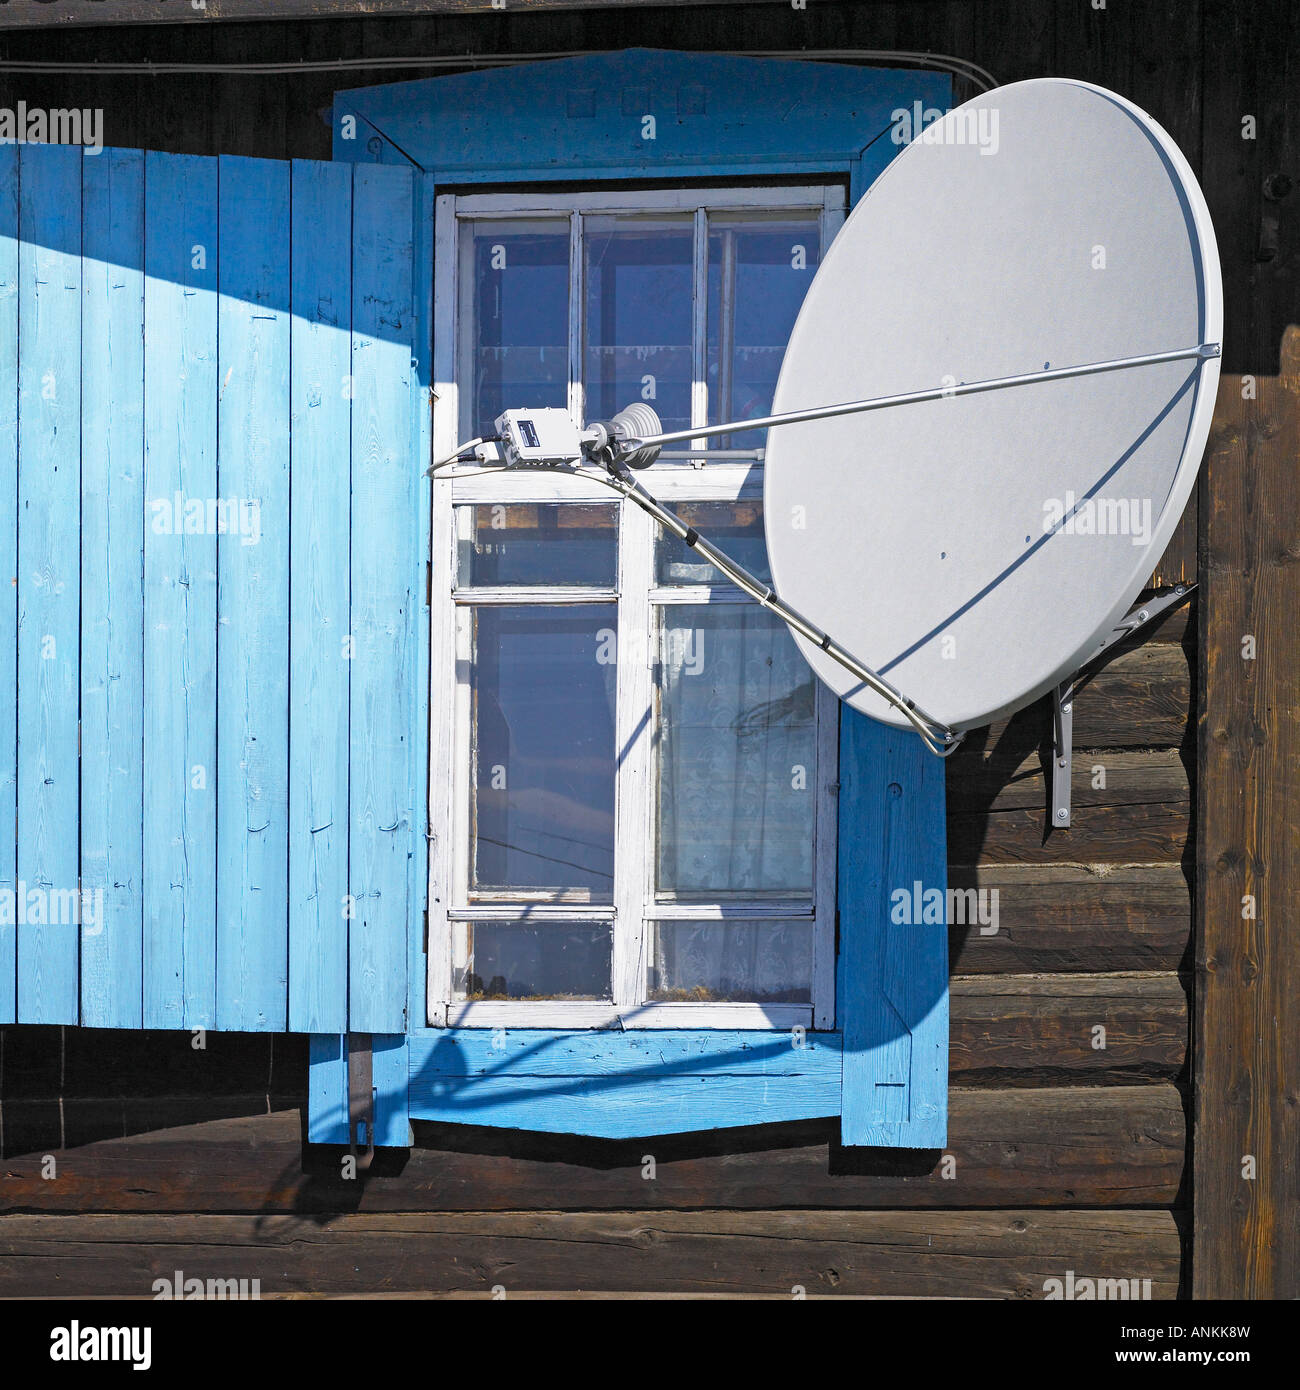 Satellite dish at the log house izba on Russian window in Siberia village - Stock Image